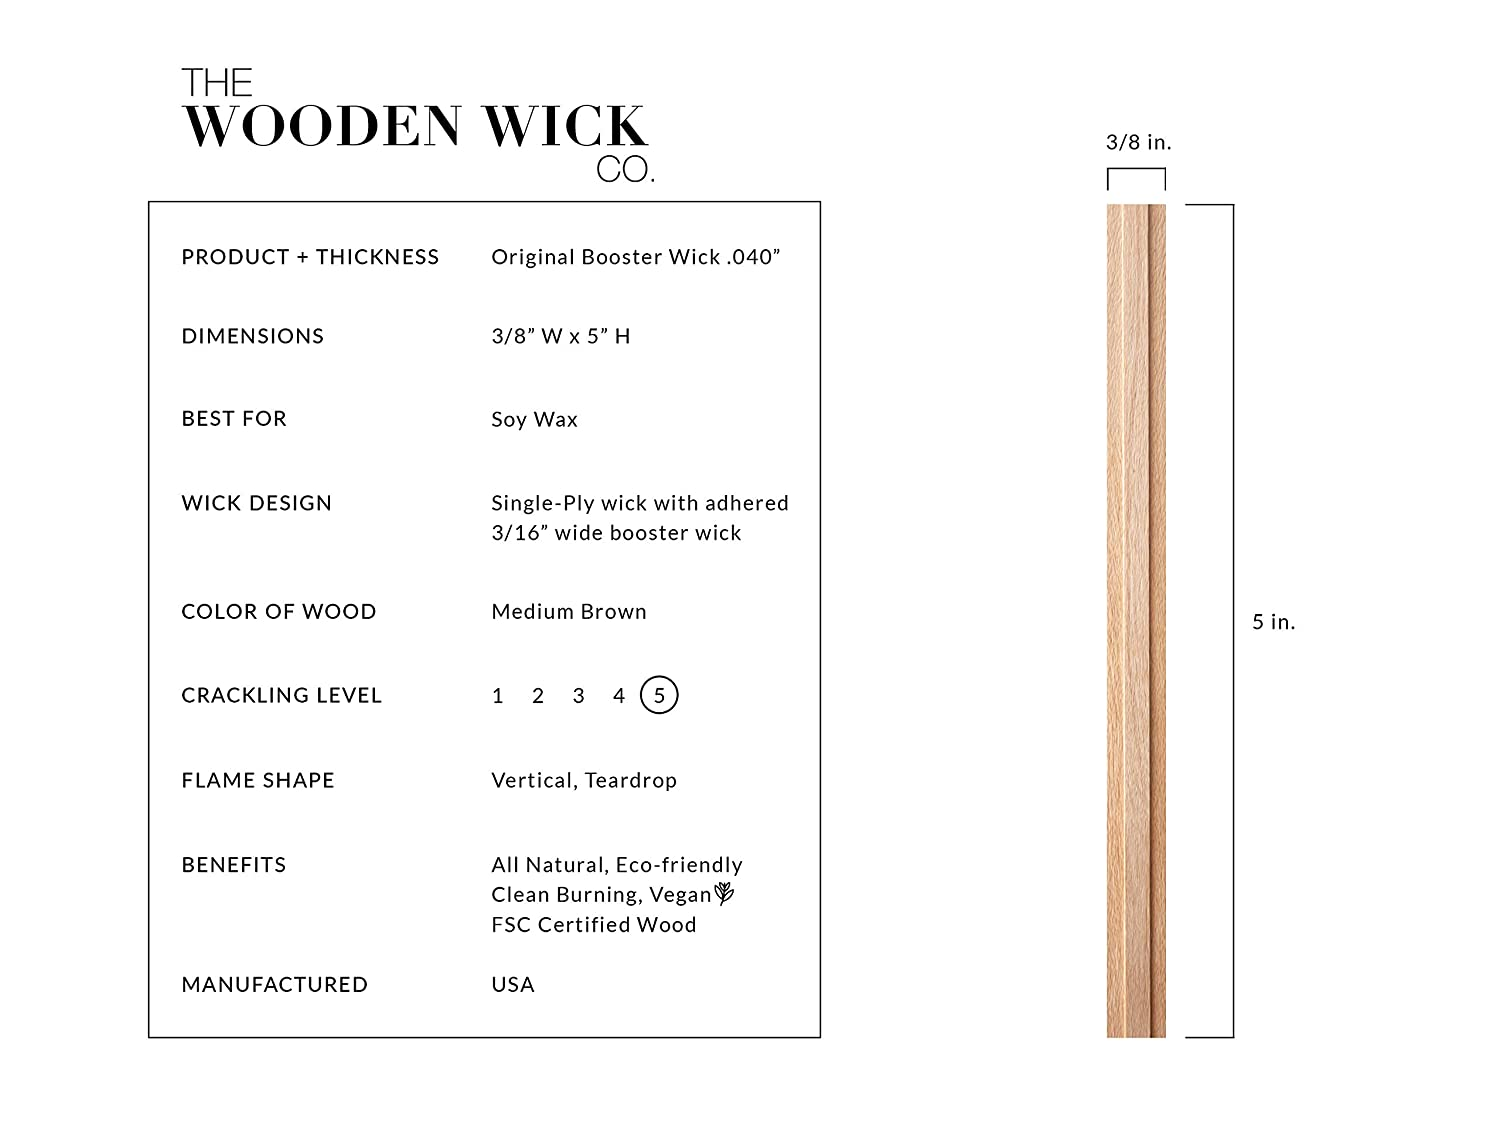 5 Inch Candle Wicks The Wooden Wick Co The Original Booster Wick .04 for Soy Wax Candles with Jar Diameter 2.5-3 Inch Authentic Wood Wick Candle Making Supplies with Metal Stand